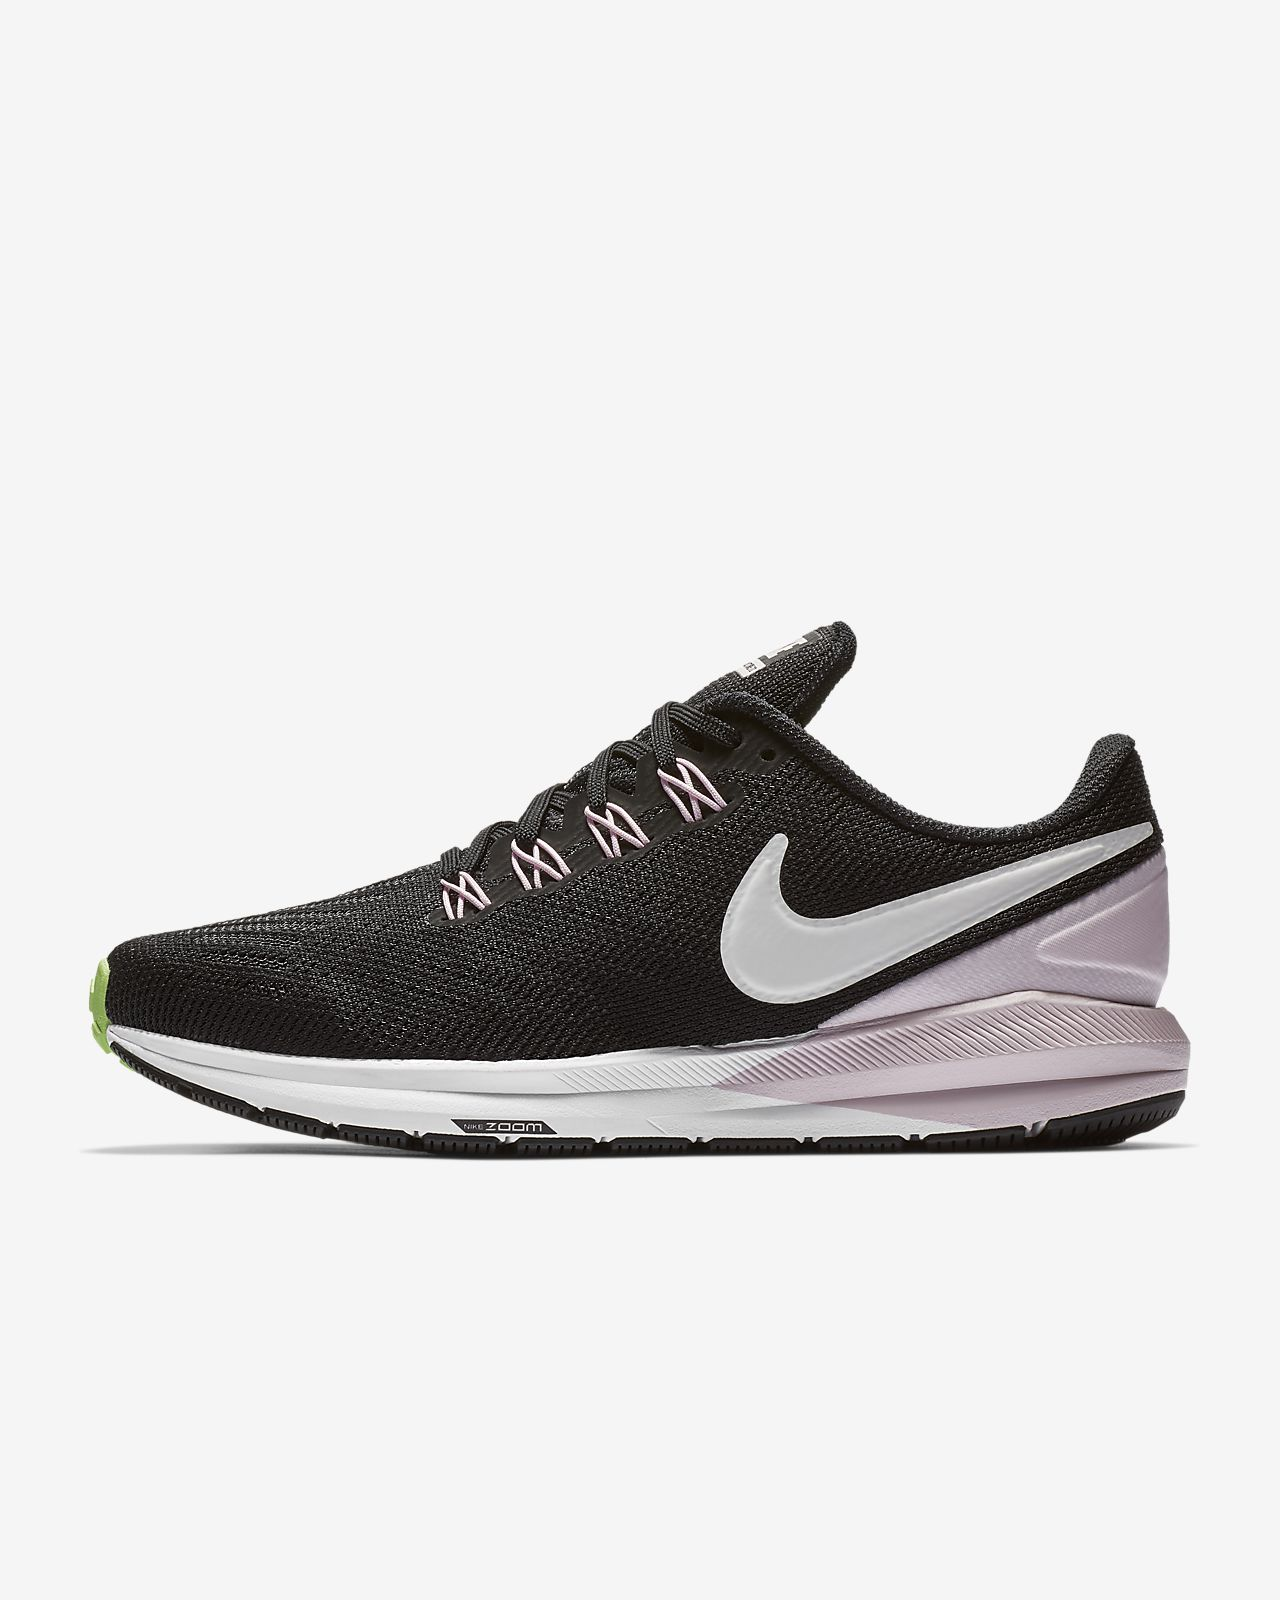 cff375386df1 Nike Air Zoom Structure 22 Women s Running Shoe. Nike.com